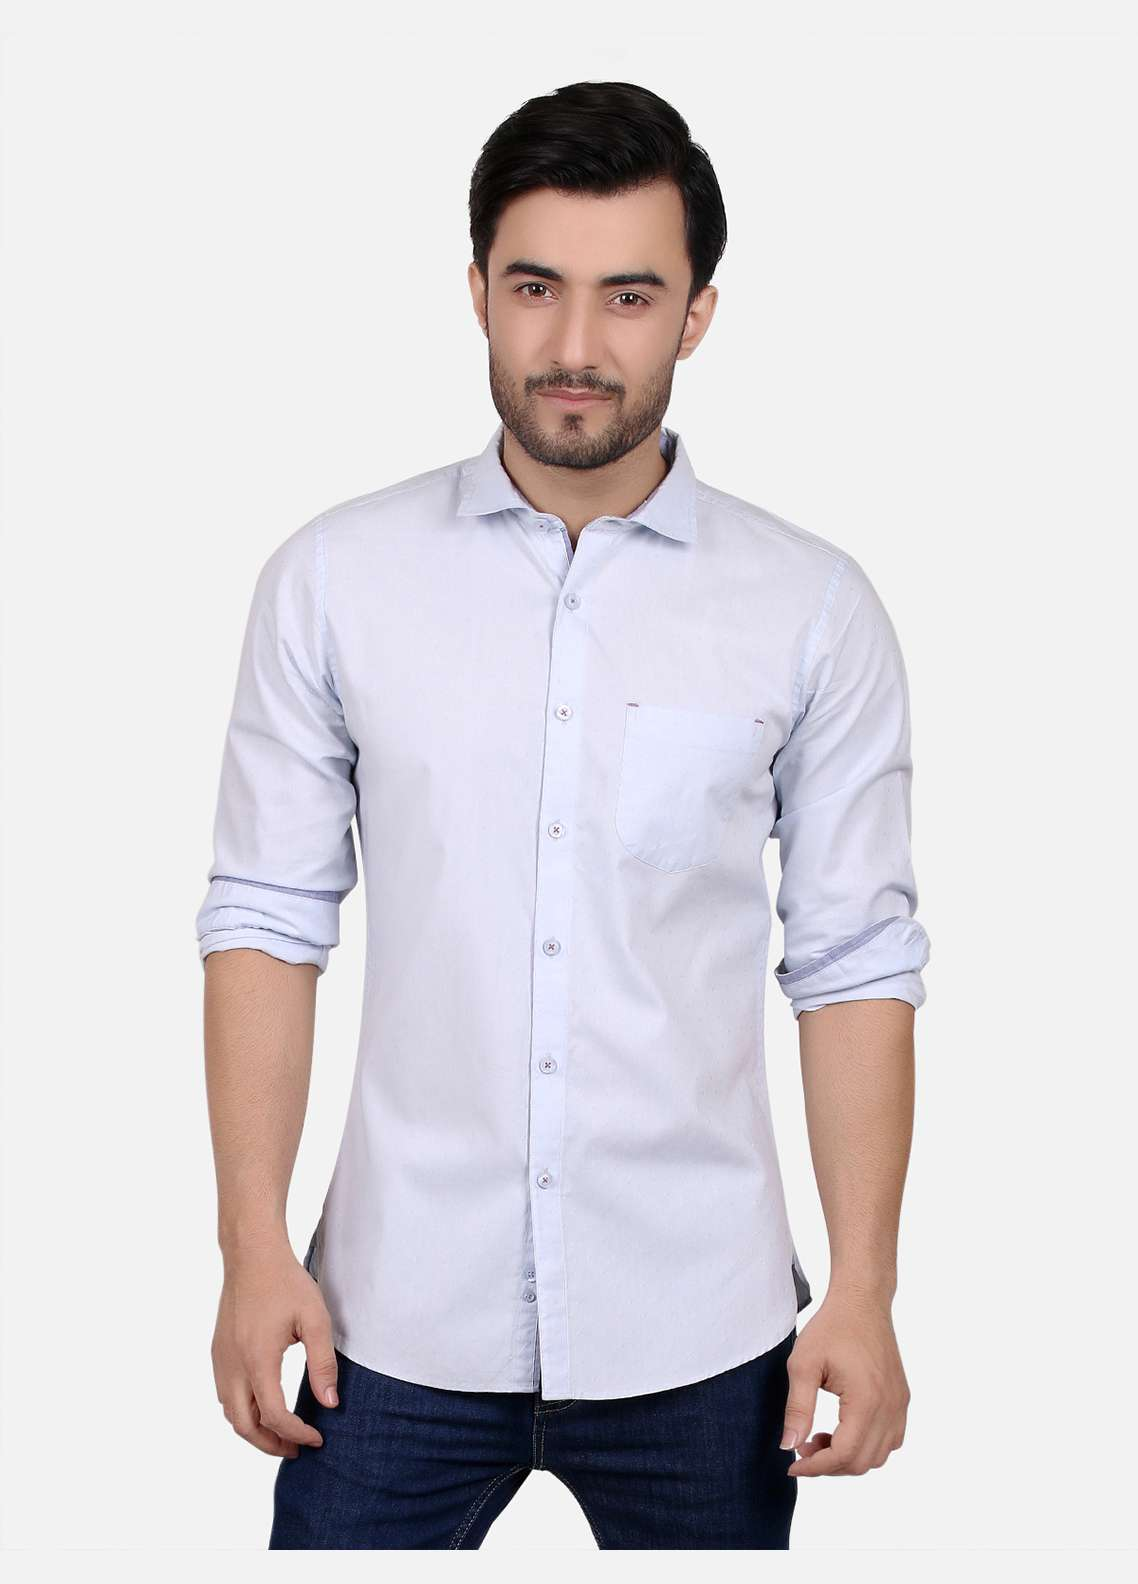 Furor  Casual Shirts for Men - Ice Blue FRM18CS 31213